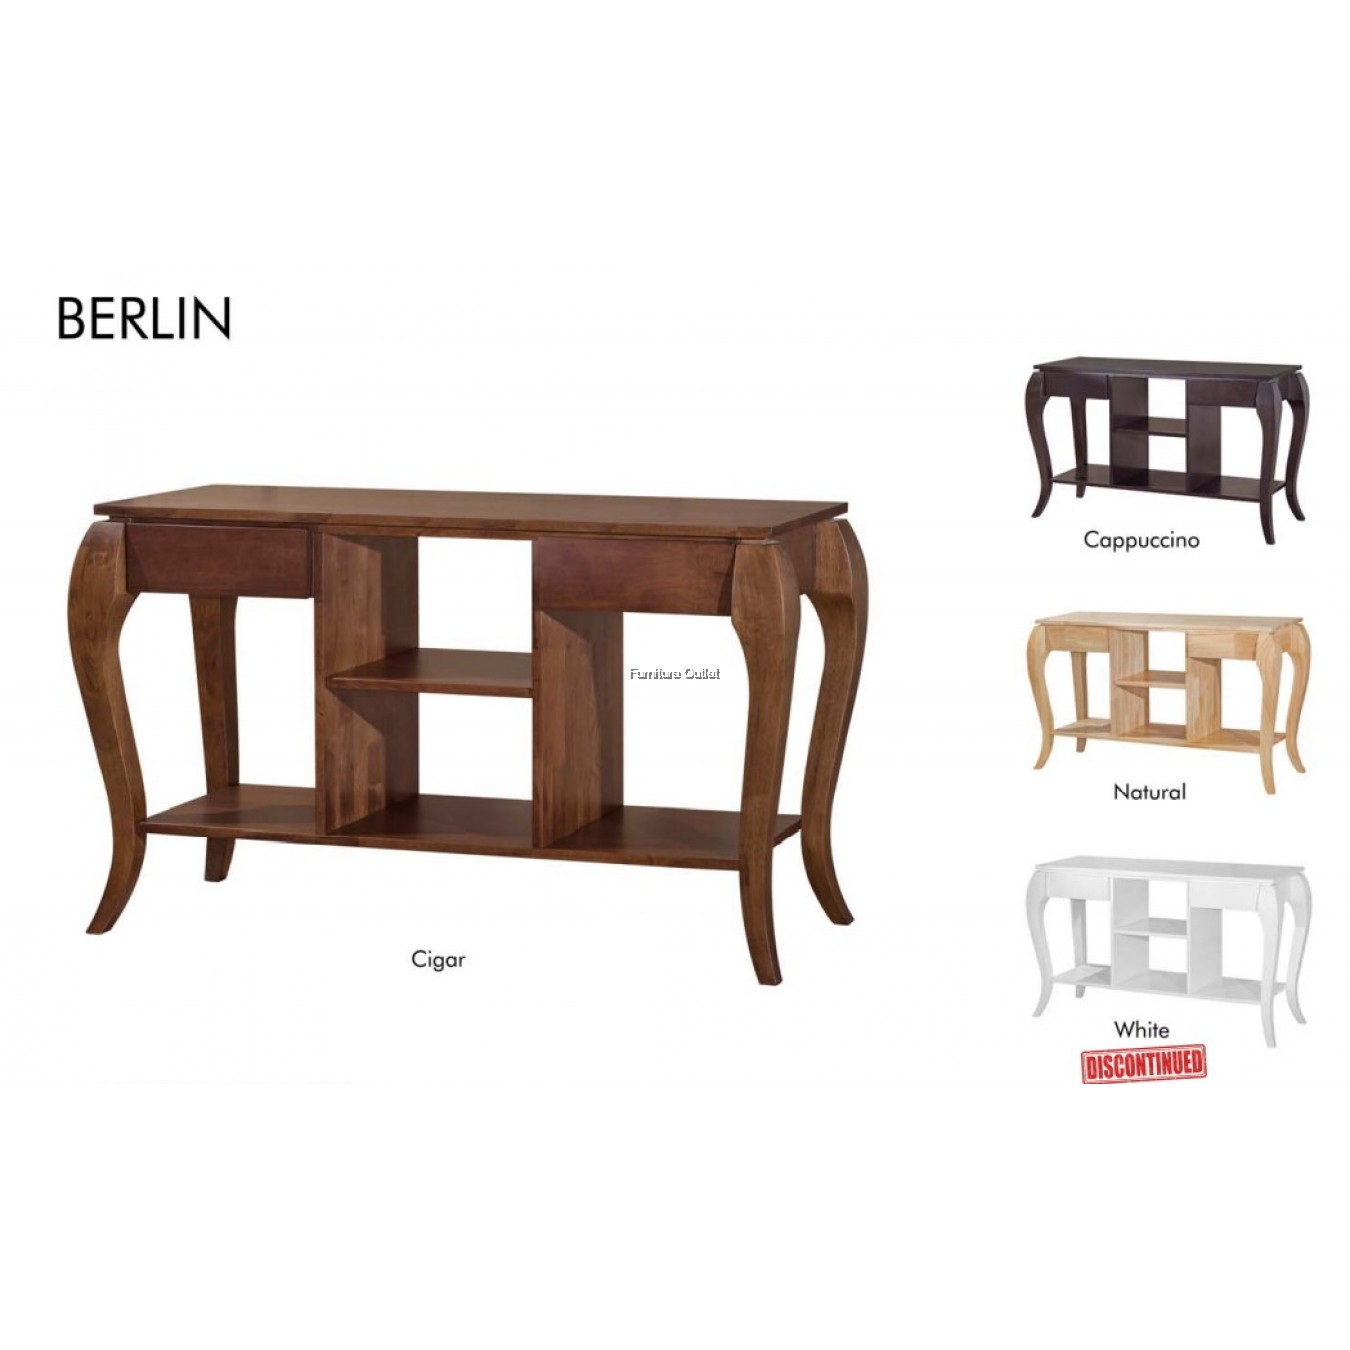 BERLIN MIRROR FRAME / + CONSOLE TABLE